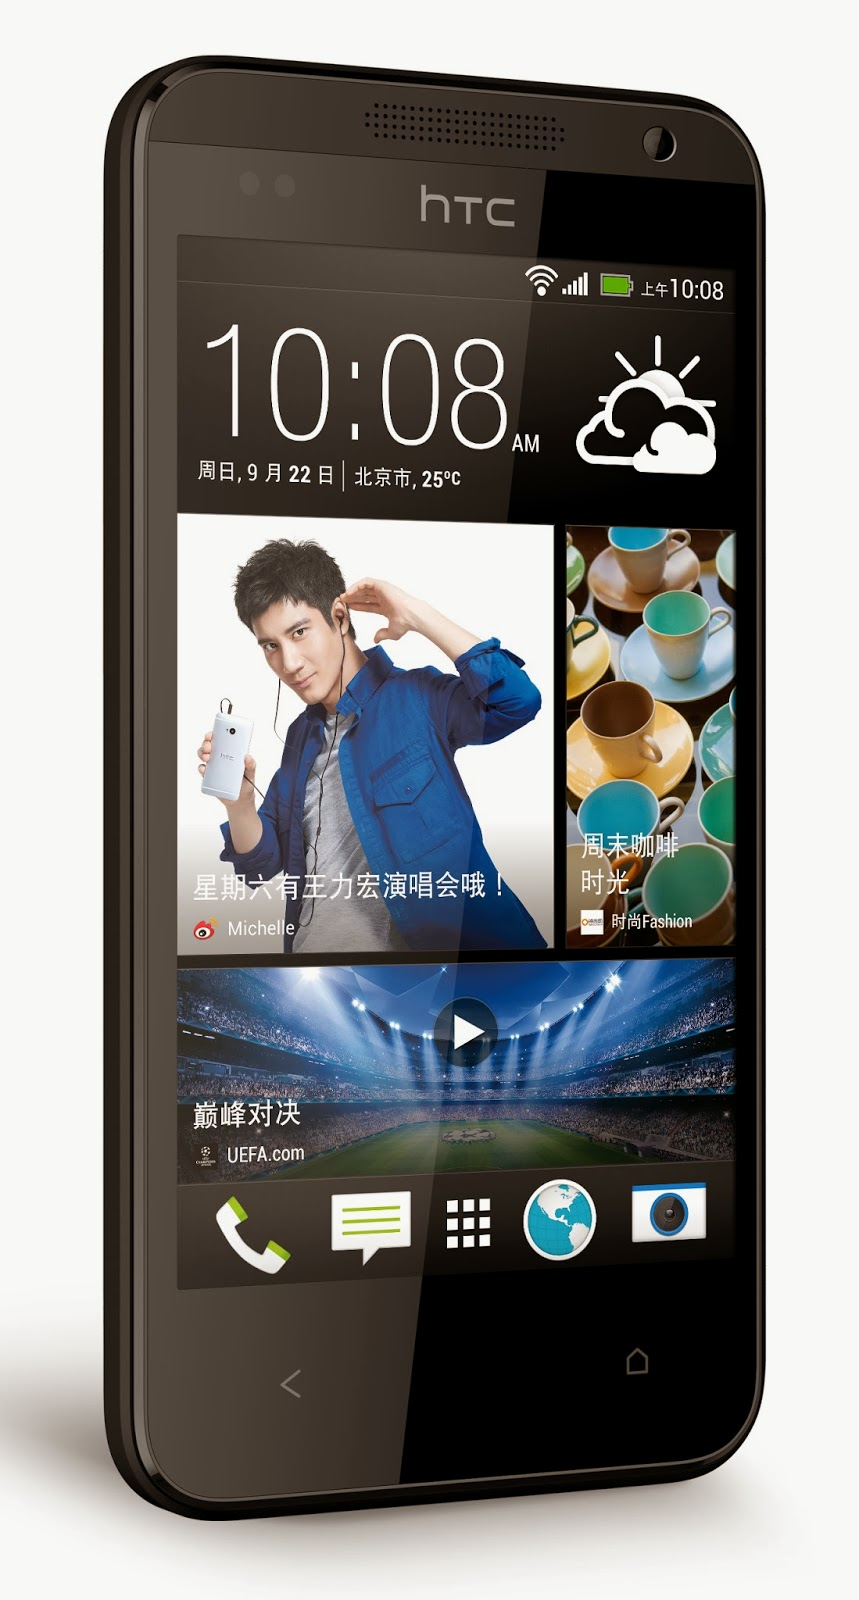 HTC unveils 4.3-inch HTC Desire 301e in China, new mid ...